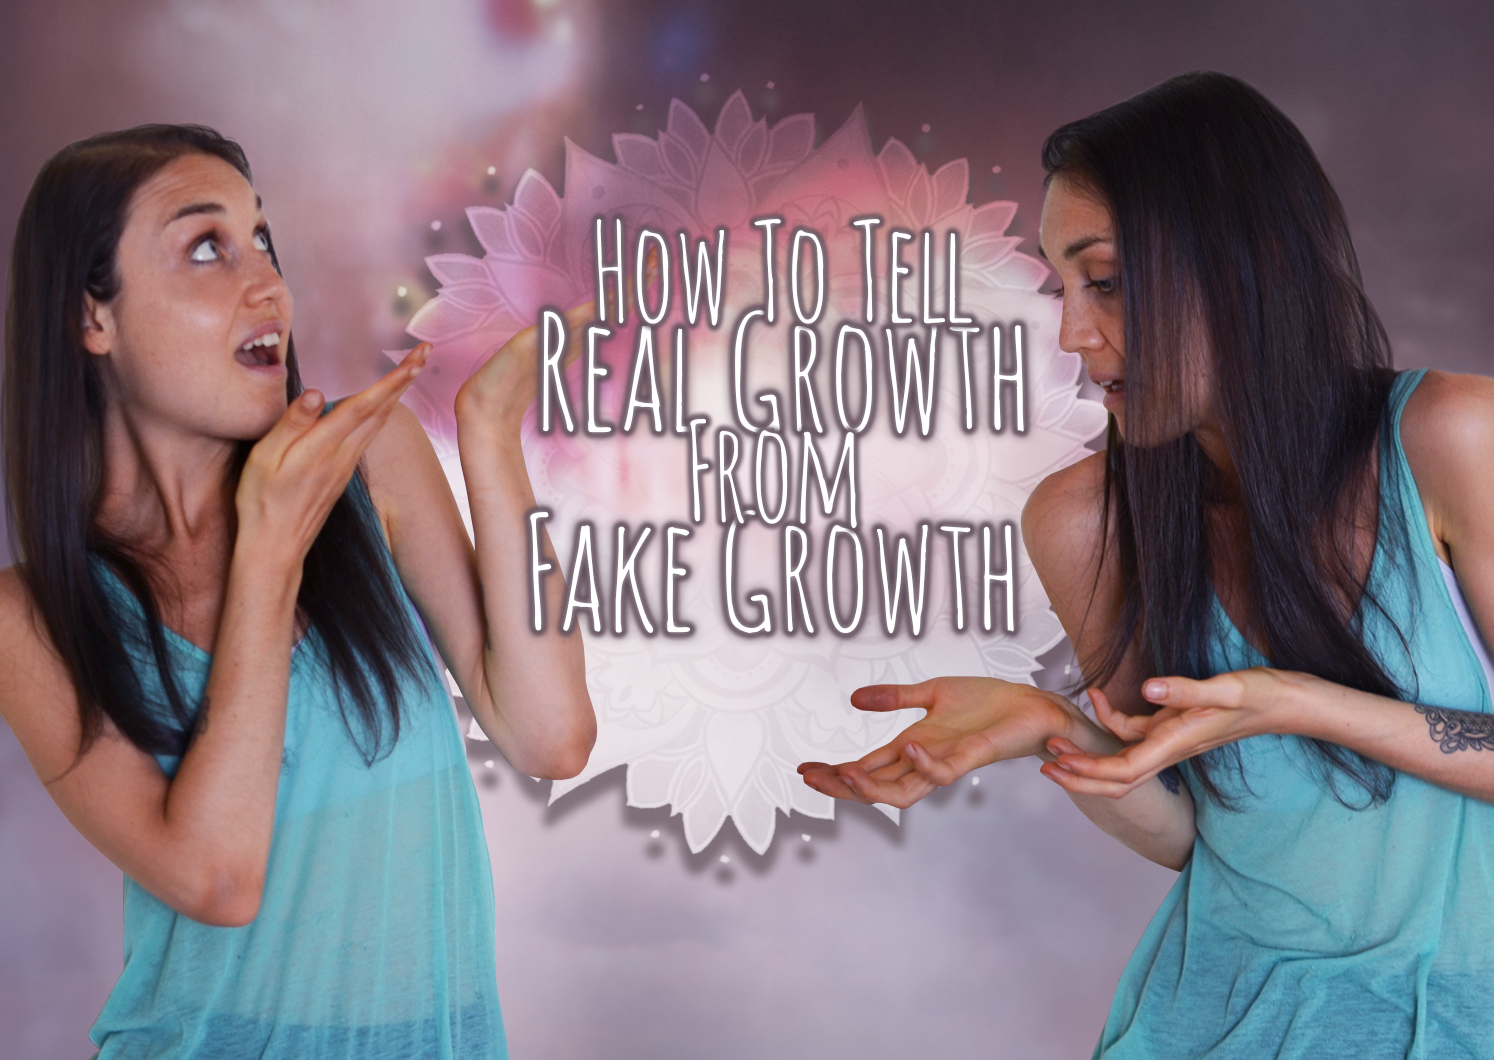 How To Tell Real Growth From Fake Growth